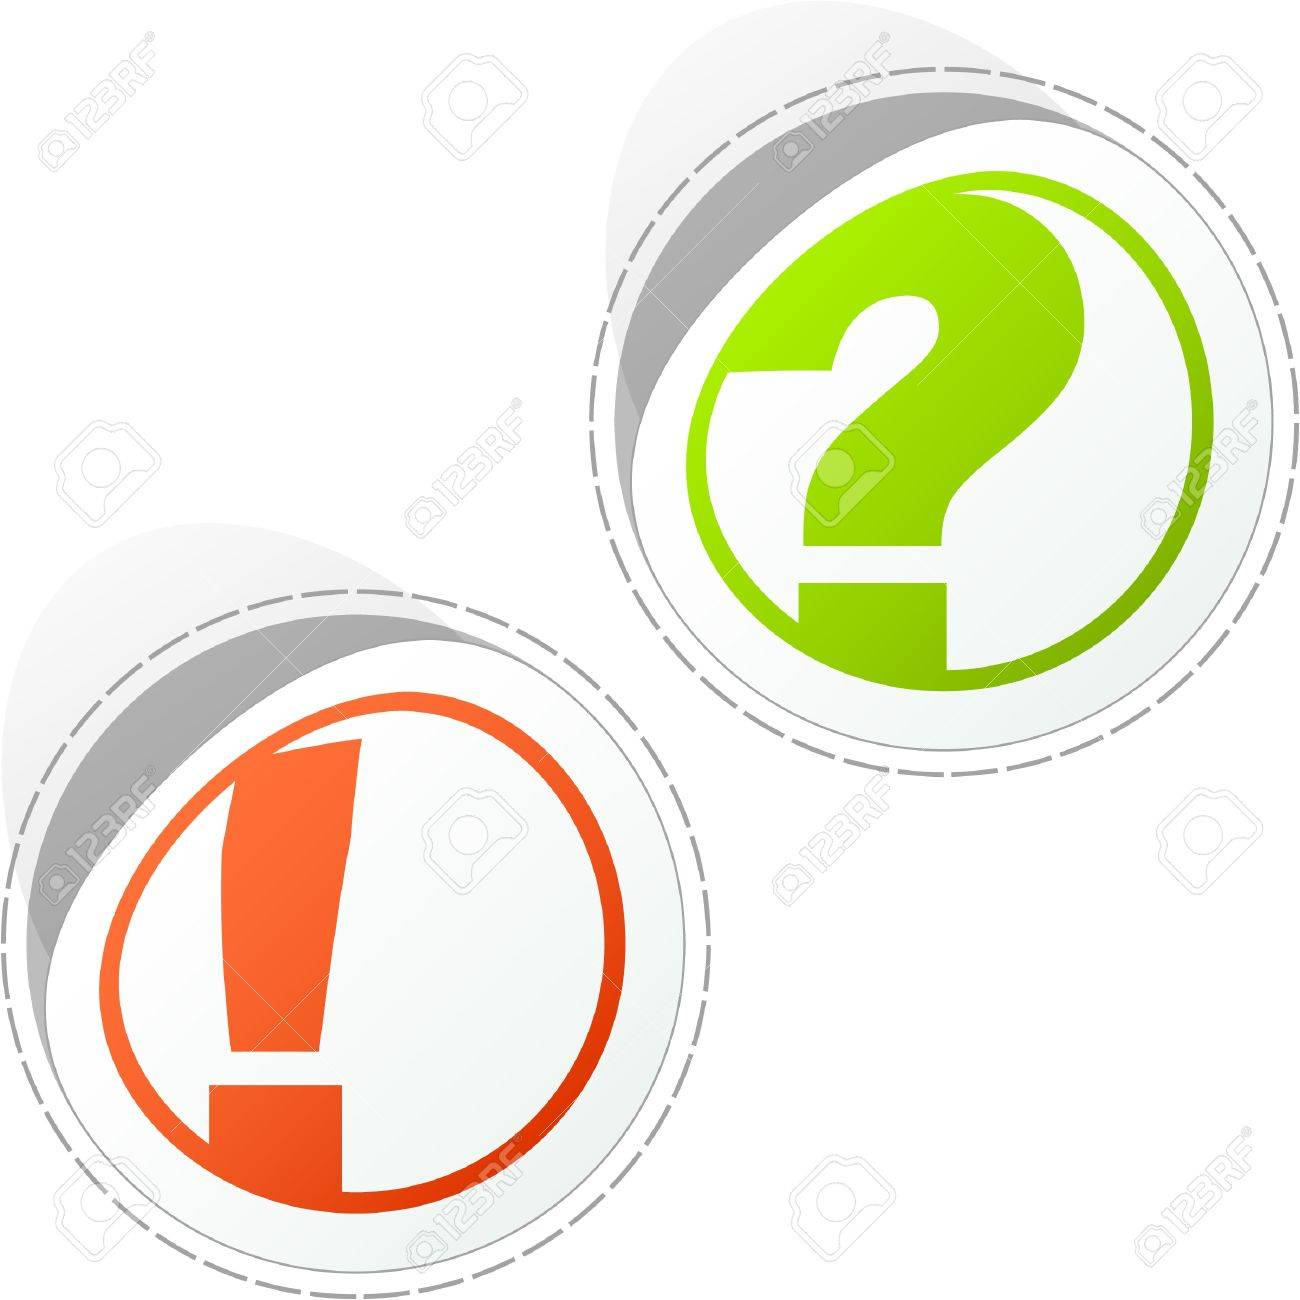 Exclamation and question vector elements. Stock Vector - 8946455